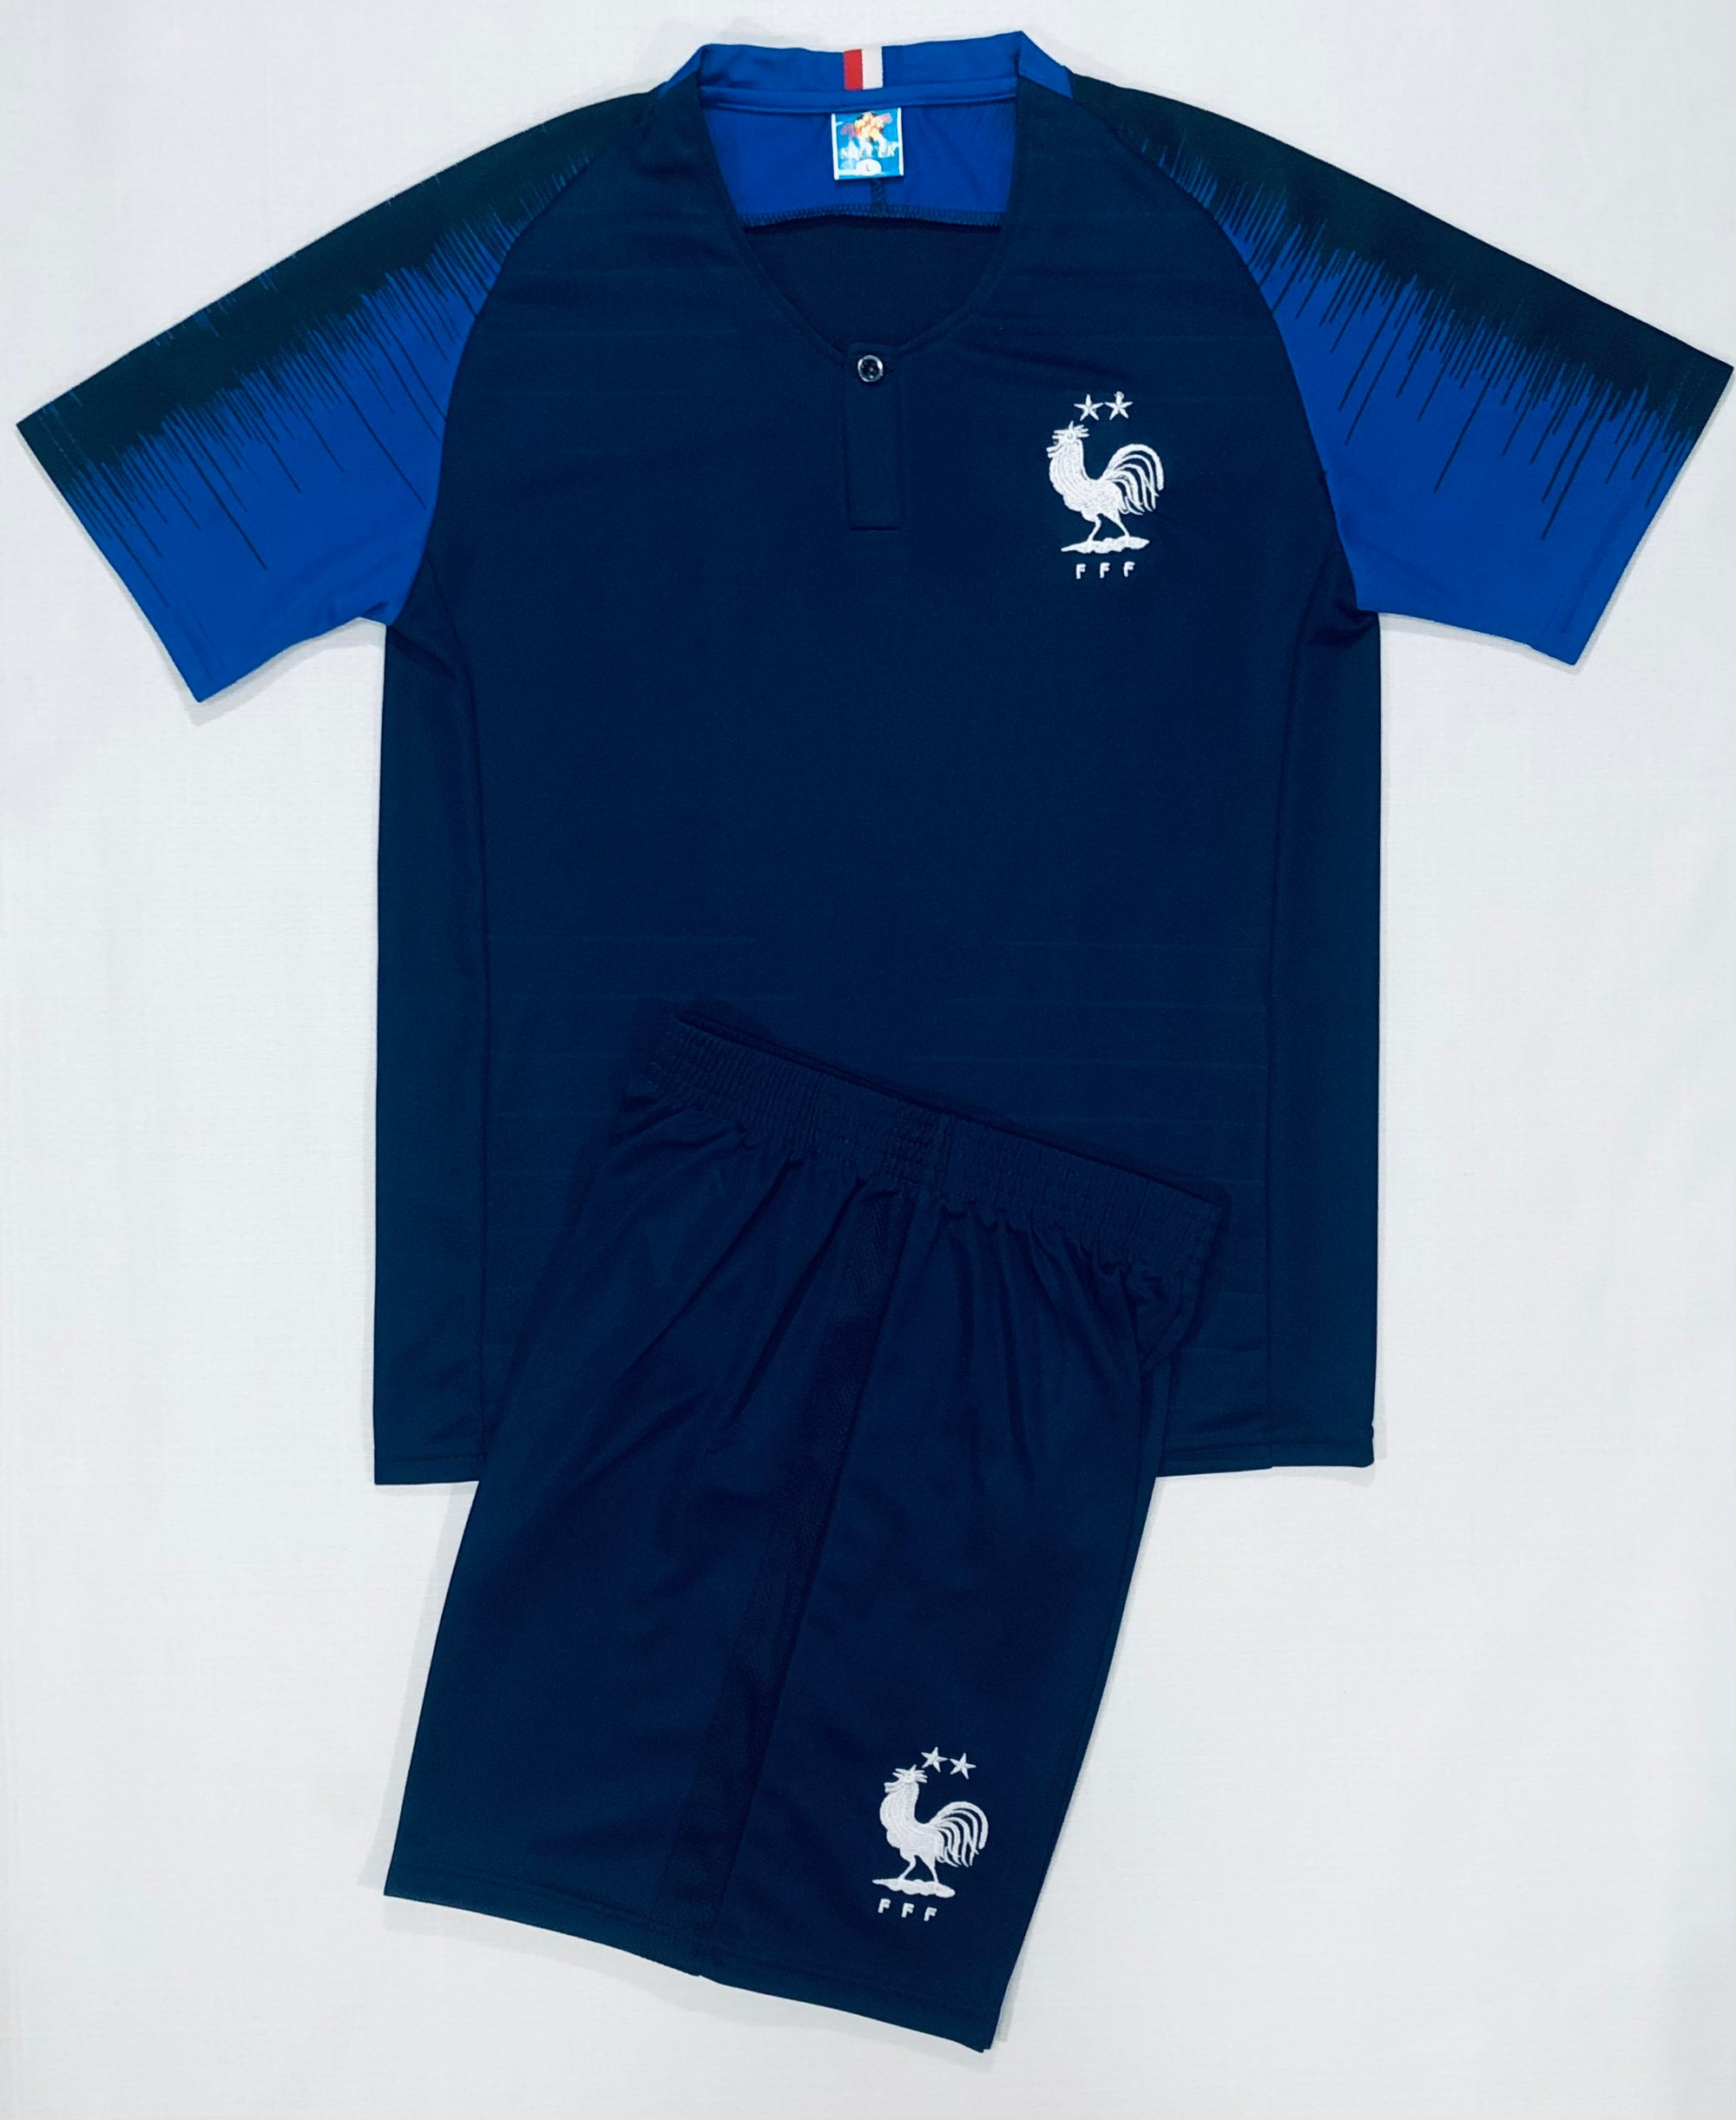 FRANCE HOME WORLD CUP 2018 KIDS 2-PIECE SOCCER SET